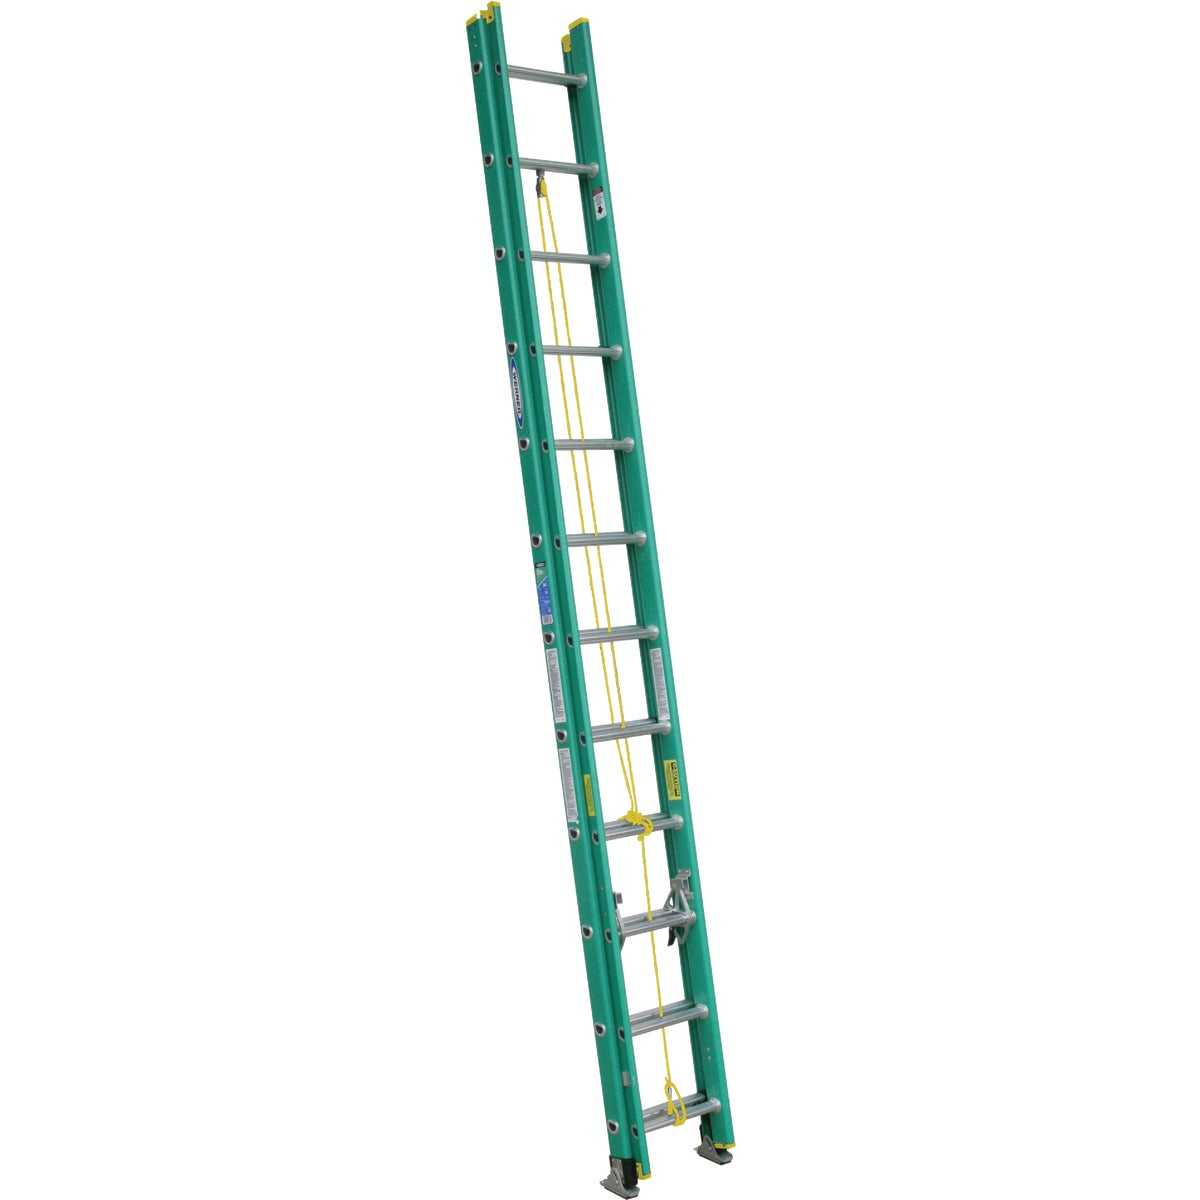 T-2 24' FBGL EXT LADDER - D5924-2 by Werner Ladder